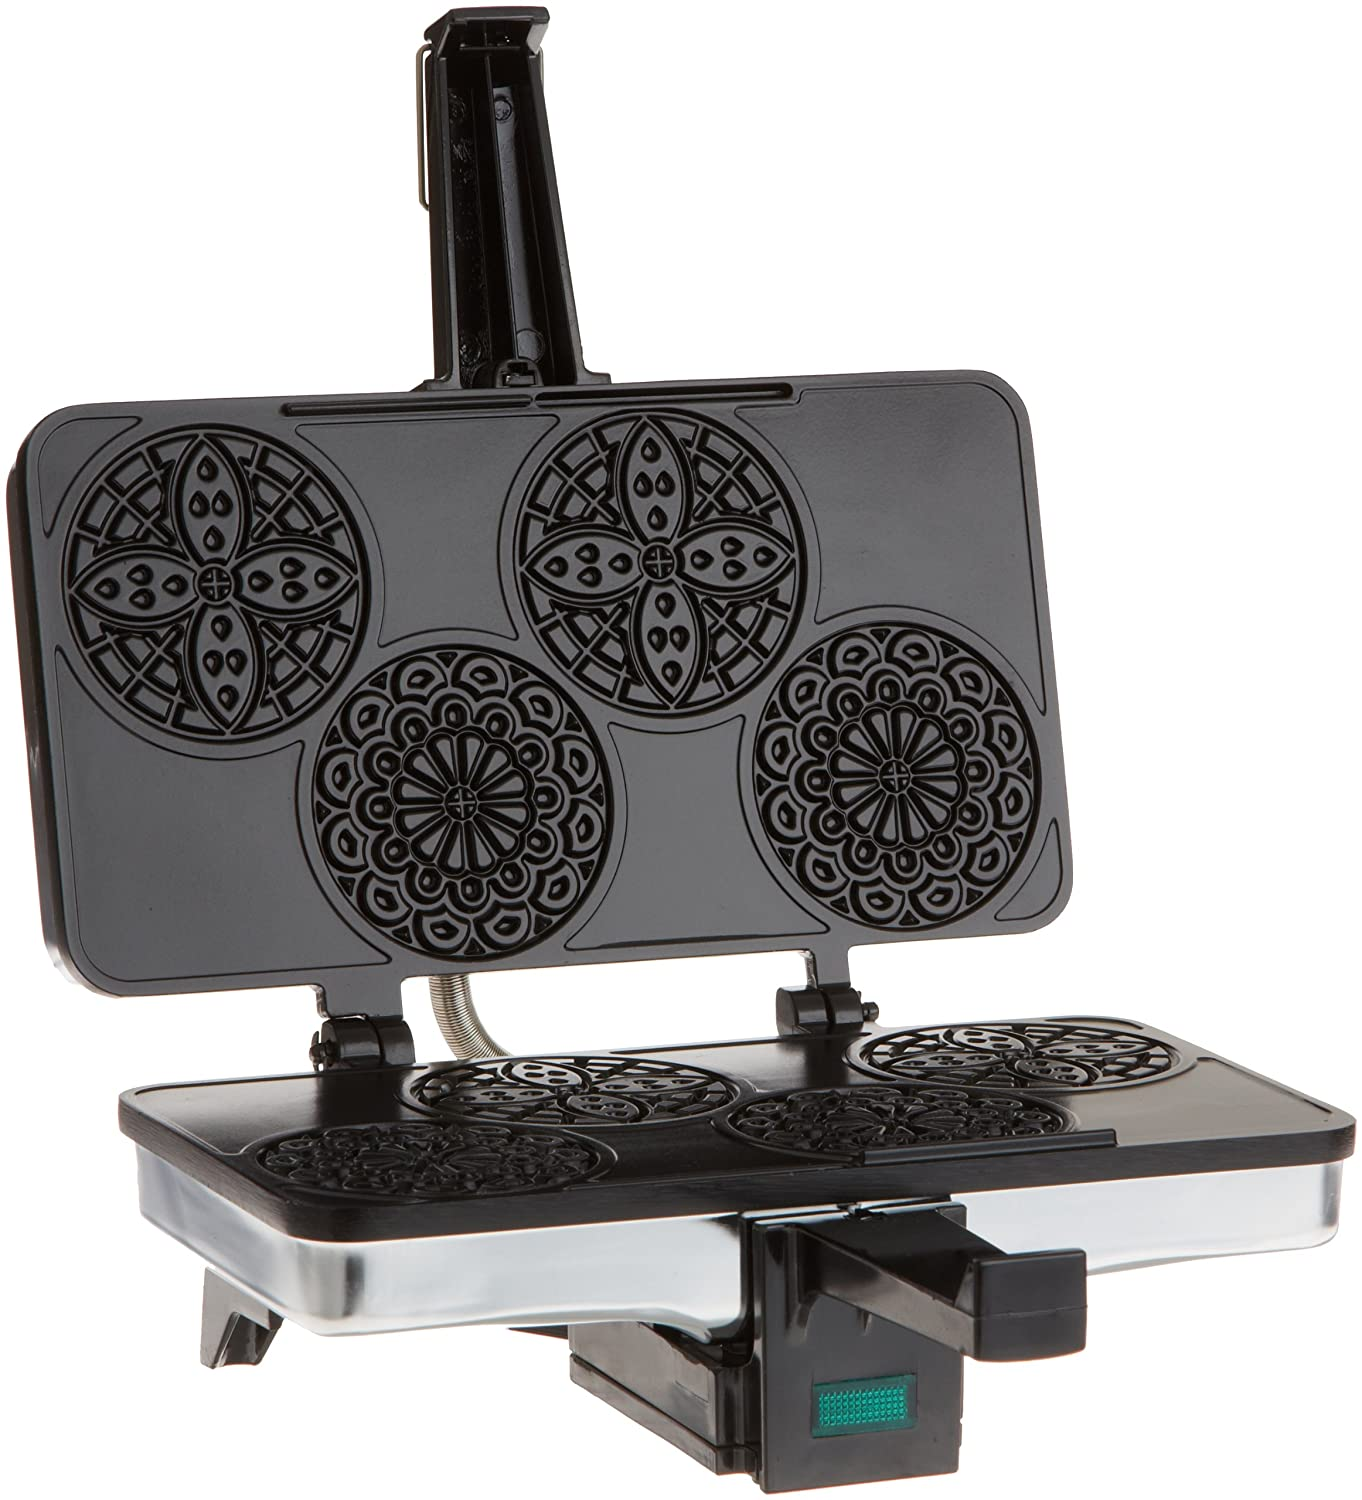 Mini Pizzelle Italian Waffle Iron Maker- Baker Makes Four 3 1/4 Inch Traditional Cookies at Once- Classic Recipes Included CucinaPro 220-03